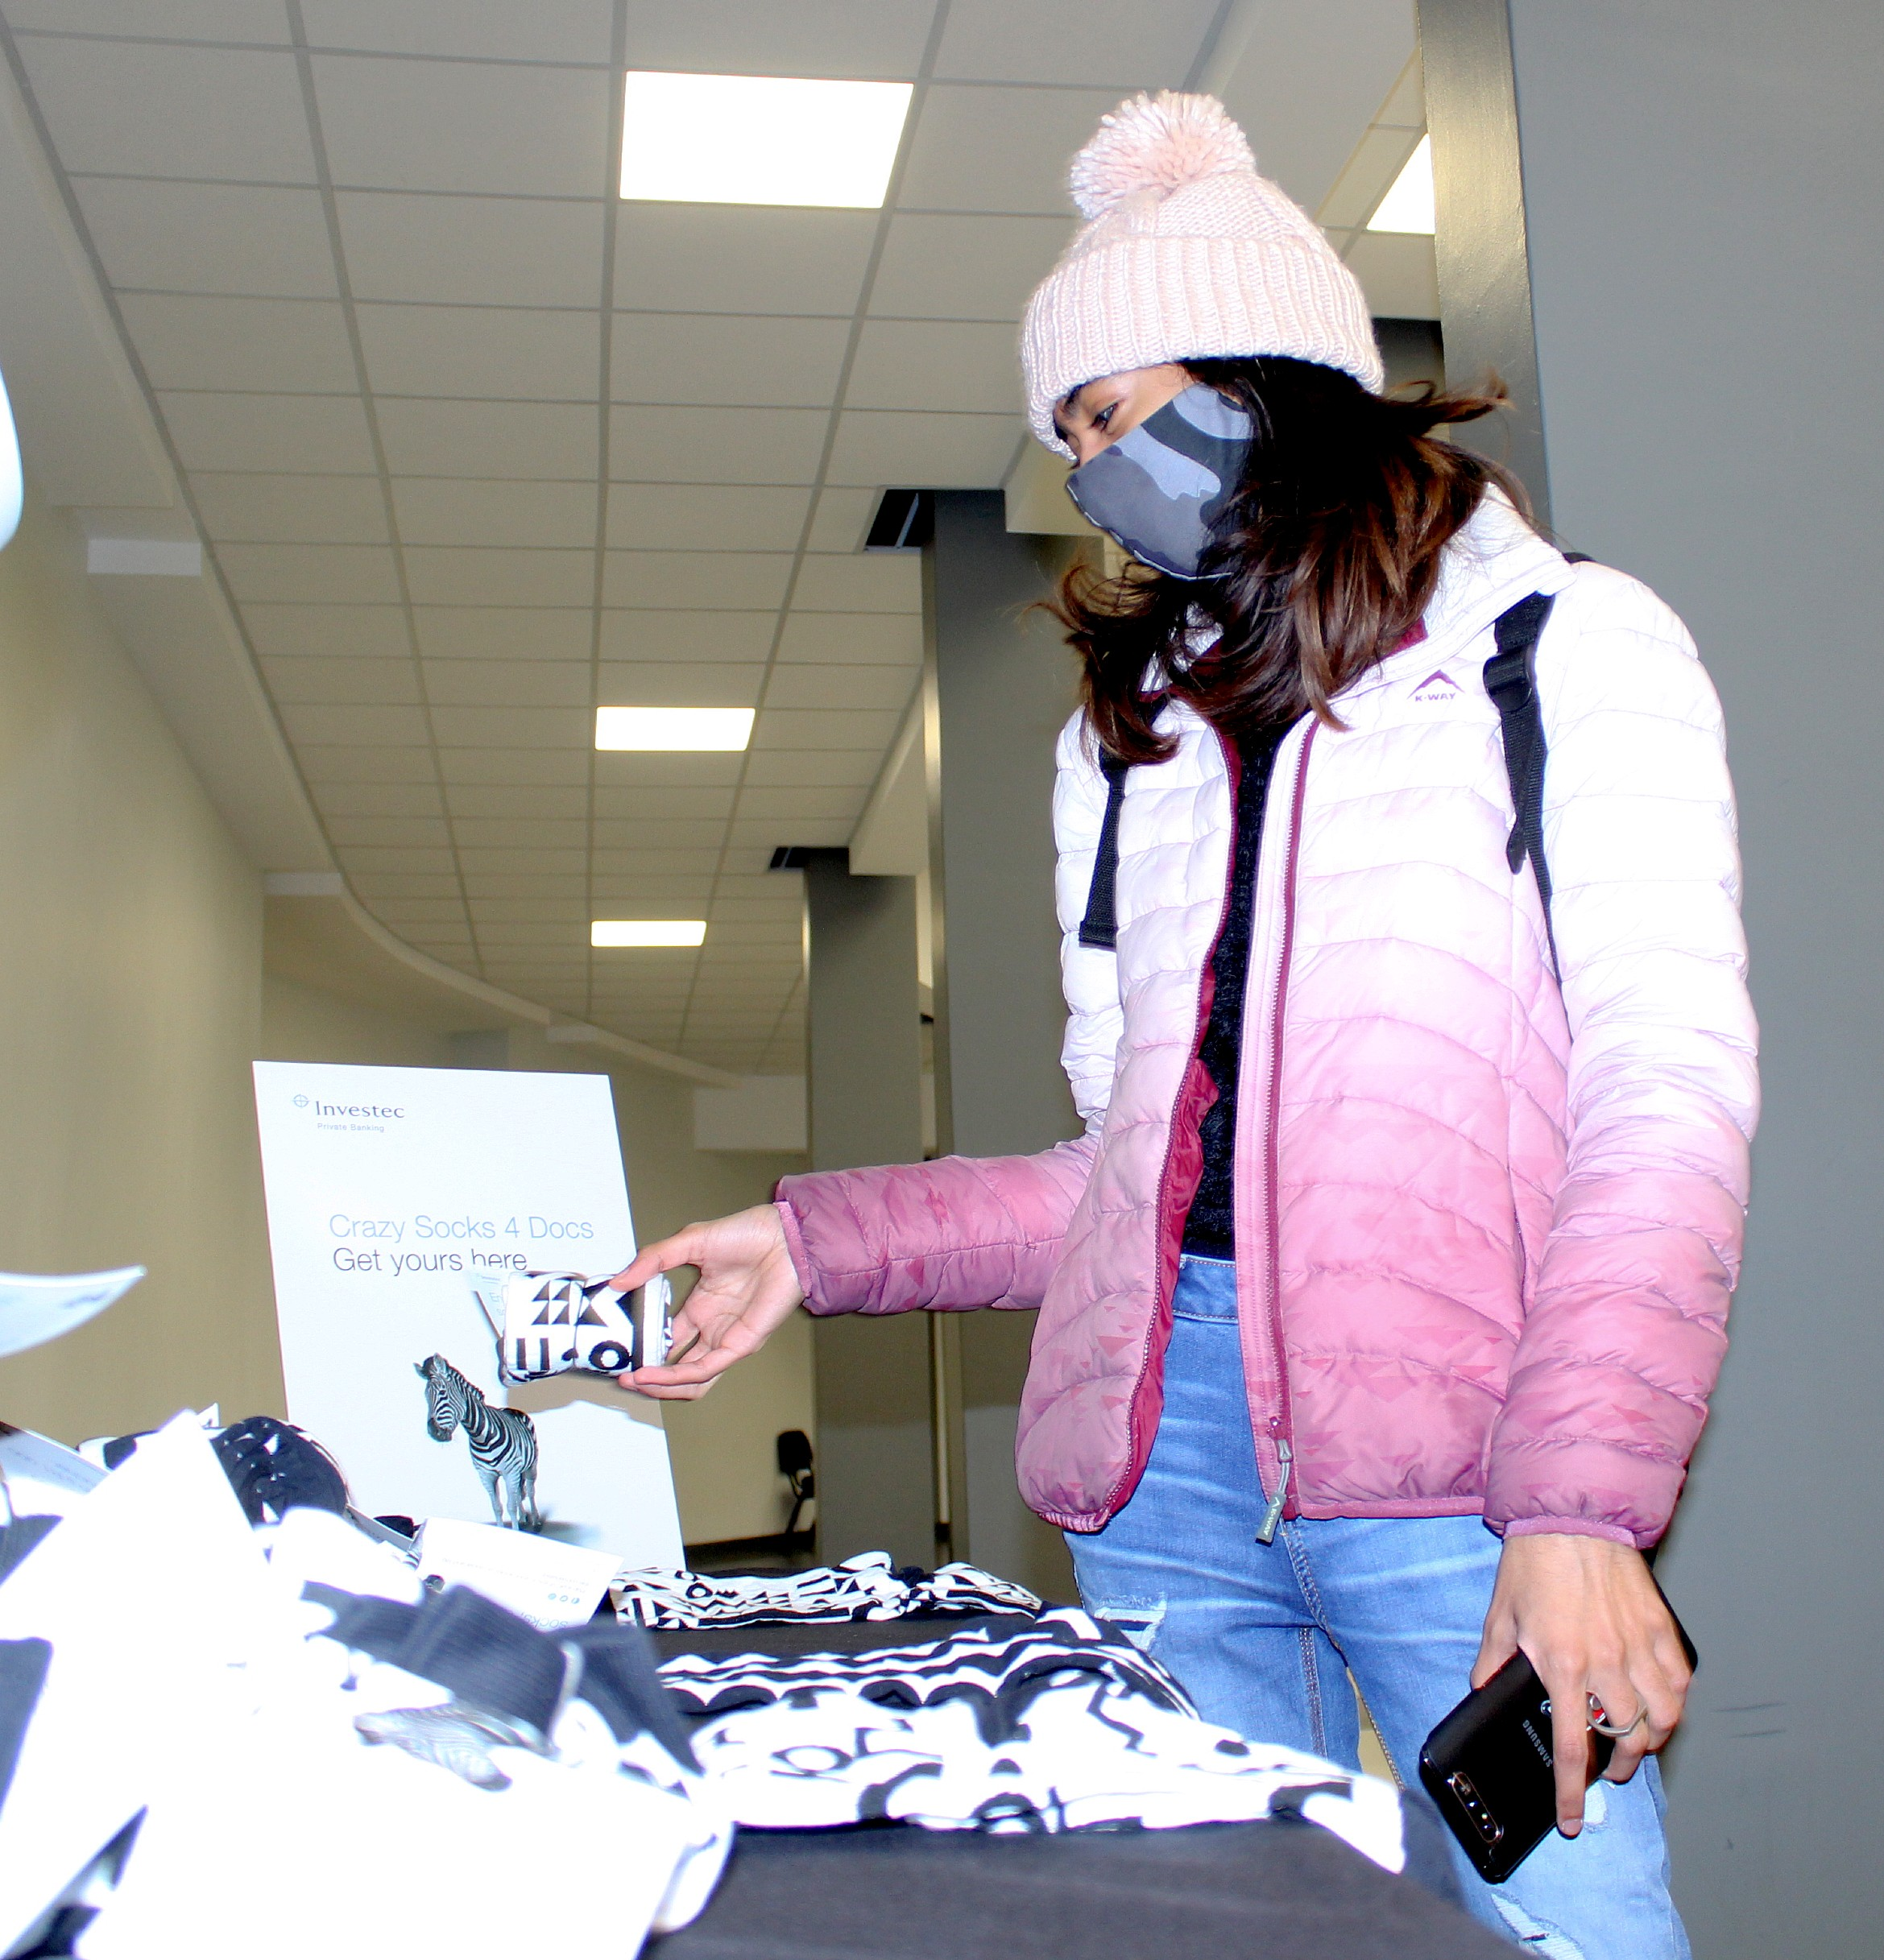 Sanam Bhagwandeen, a third-year student, choosing her pair of socks from the Investec Private Banking socks table.